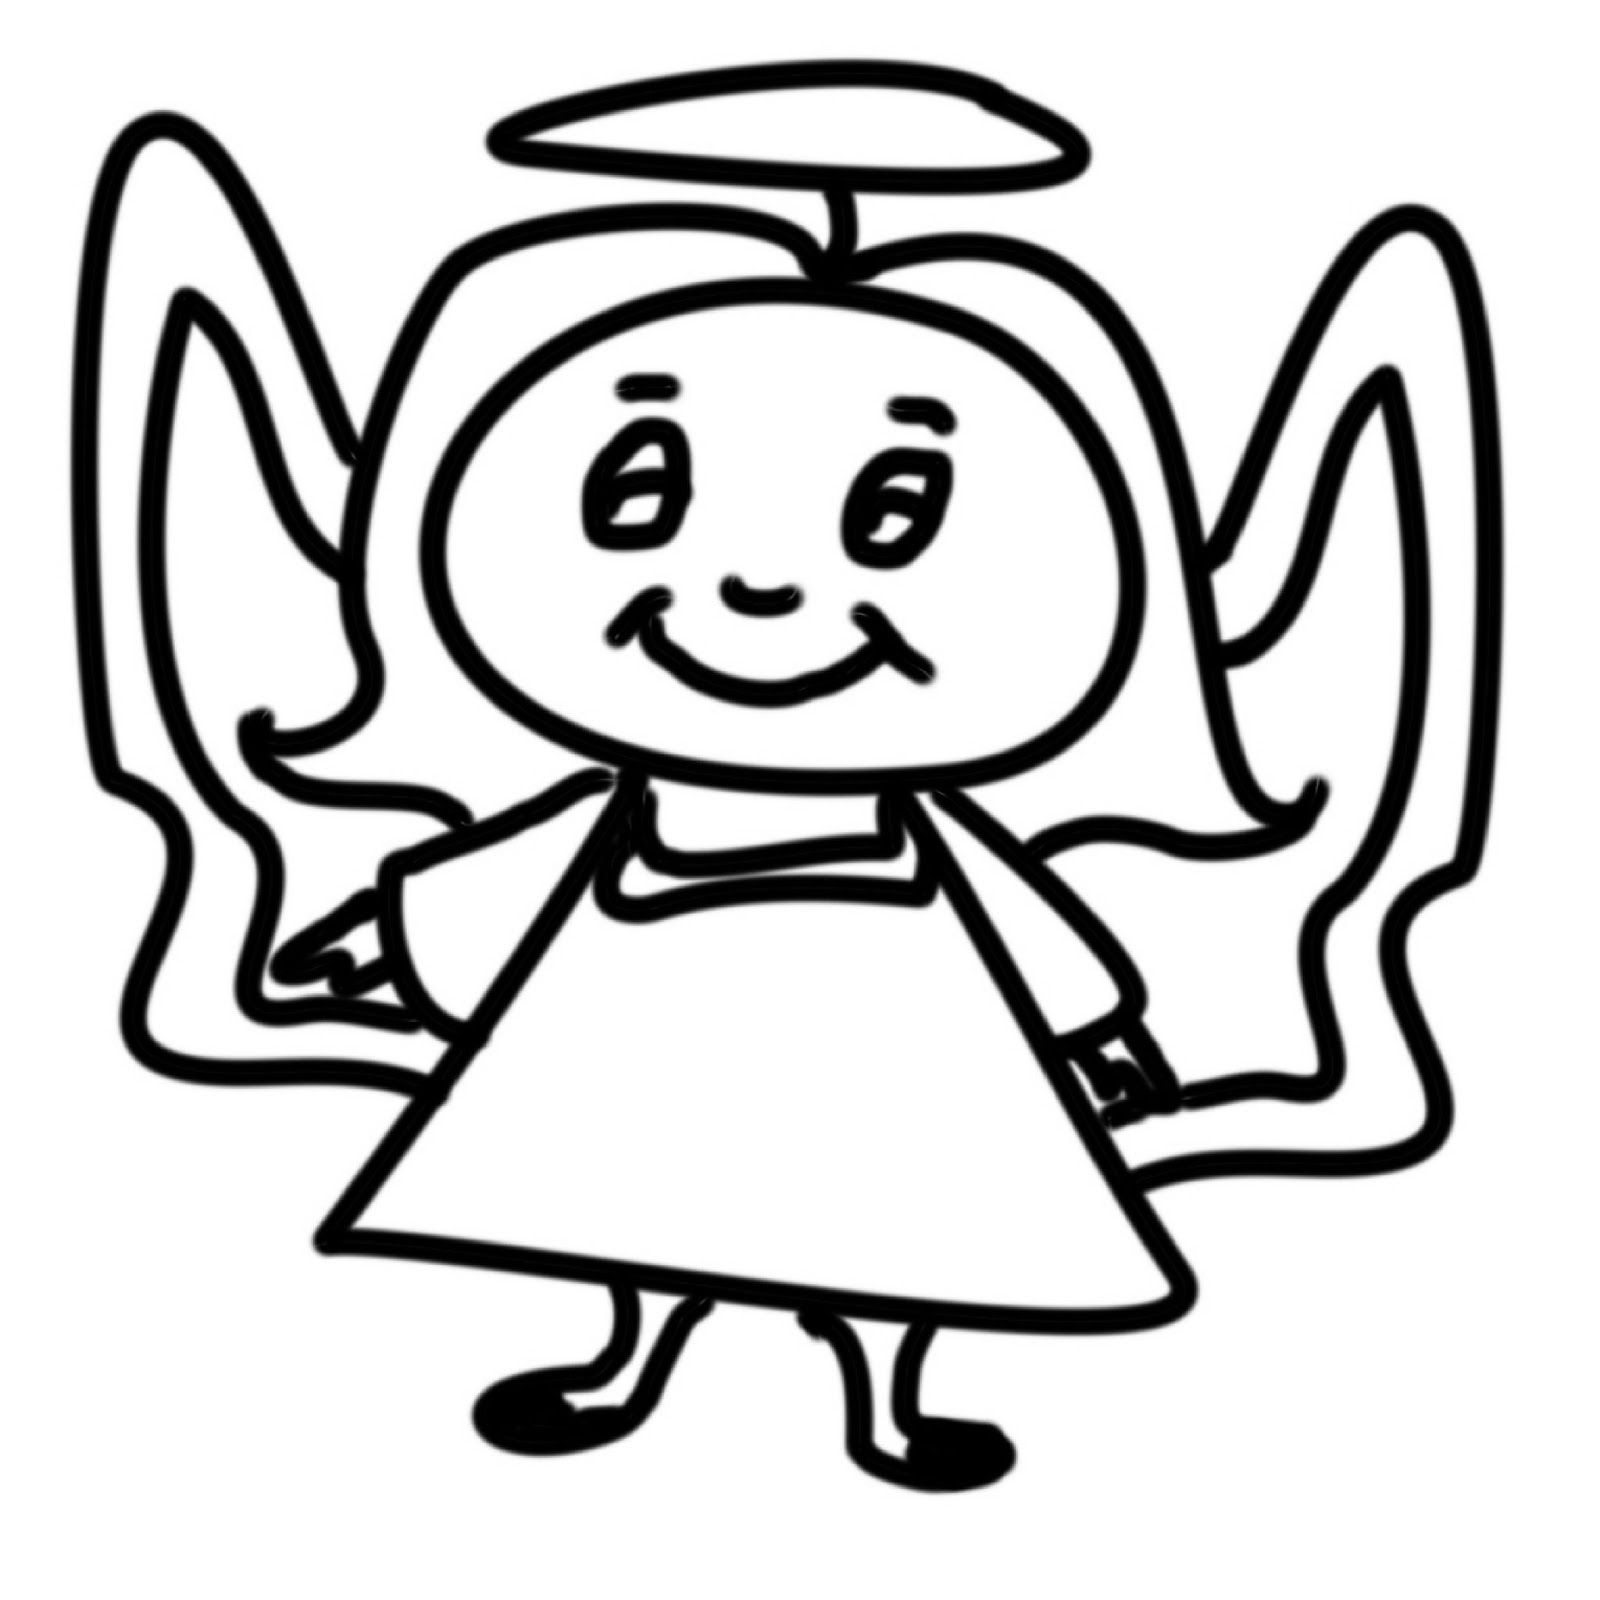 Christian Images In My Treasure Box: Home Drawn Angels